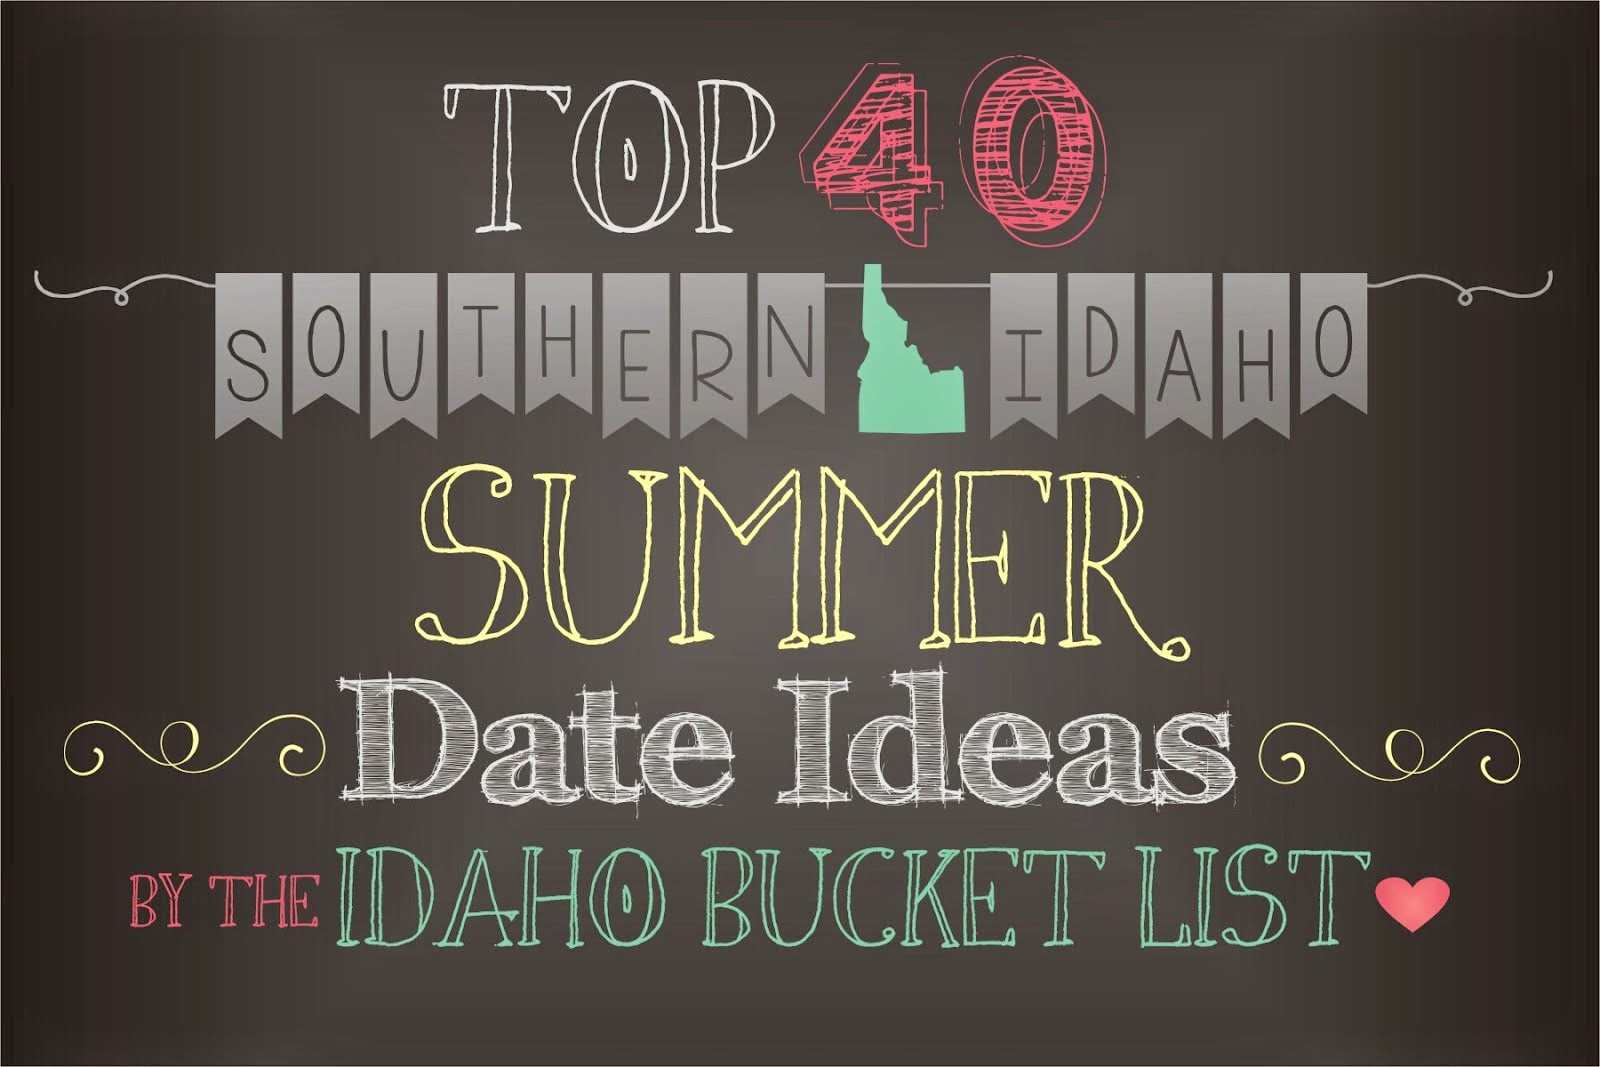 http://idahobucketlist.blogspot.com/2014/04/top-40-southern-idaho-summer-date-ideas.html